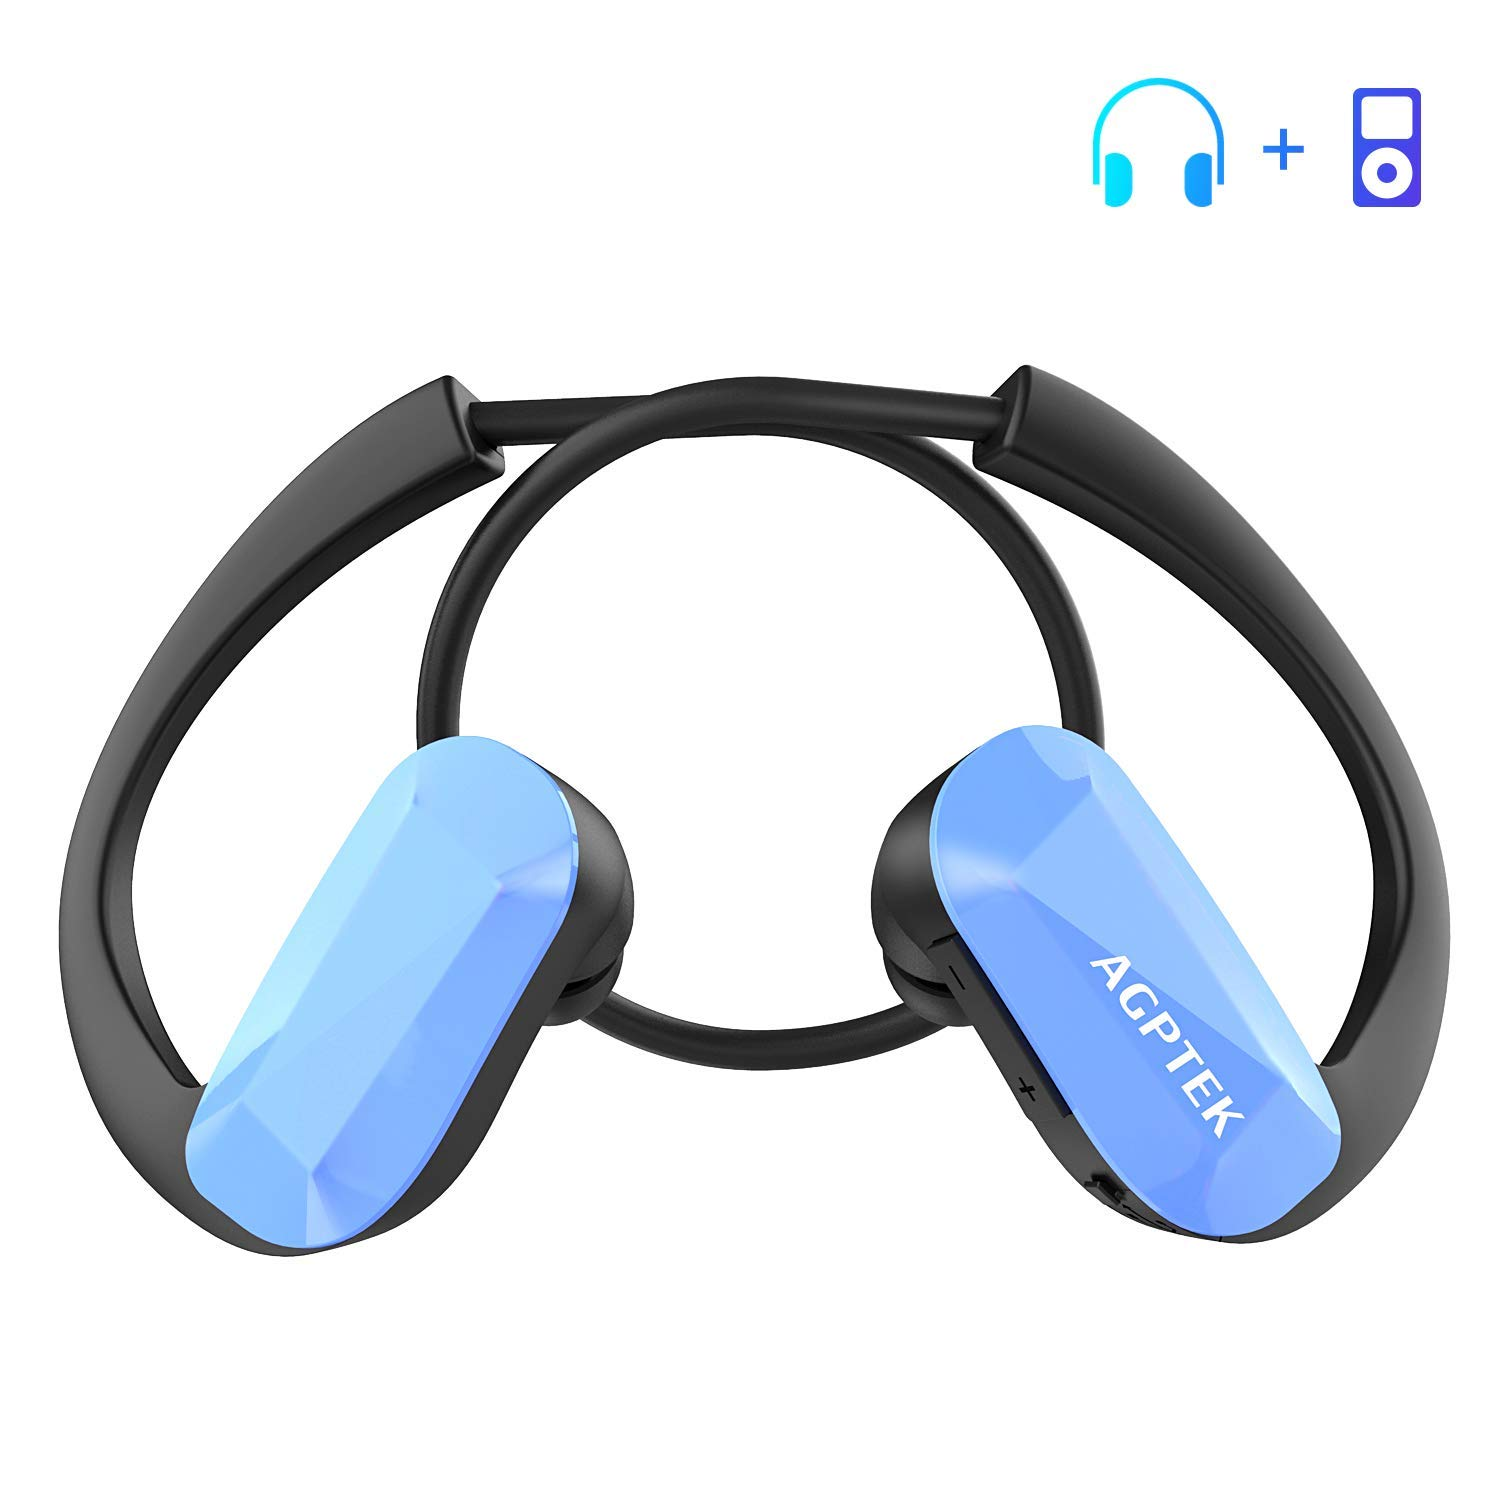 AGPTEK Sport MP3 Player Headphones All in One 8GB  Amazon.co.uk ... ab4f60c5bba6c